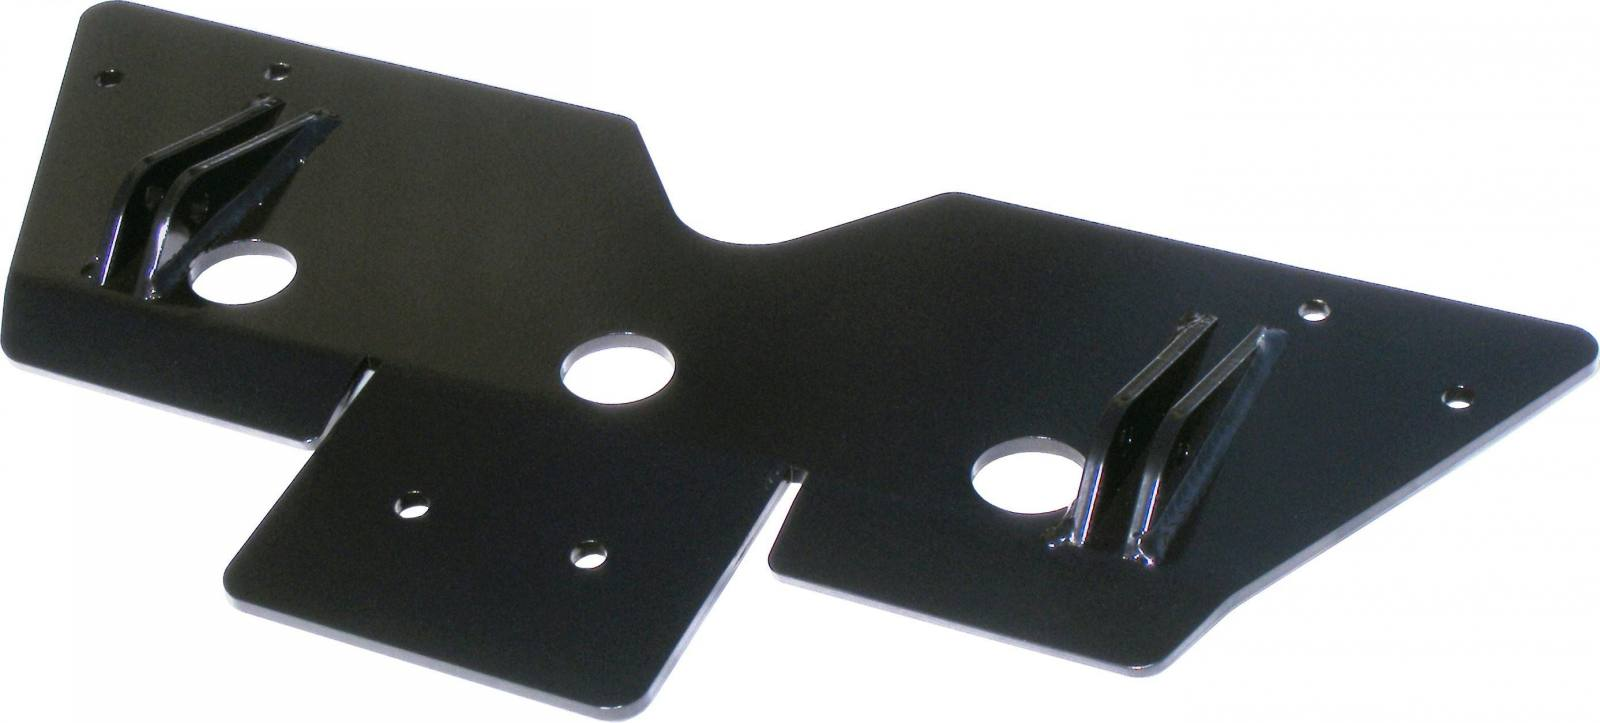 KFI 105080 ATV Plow Mount